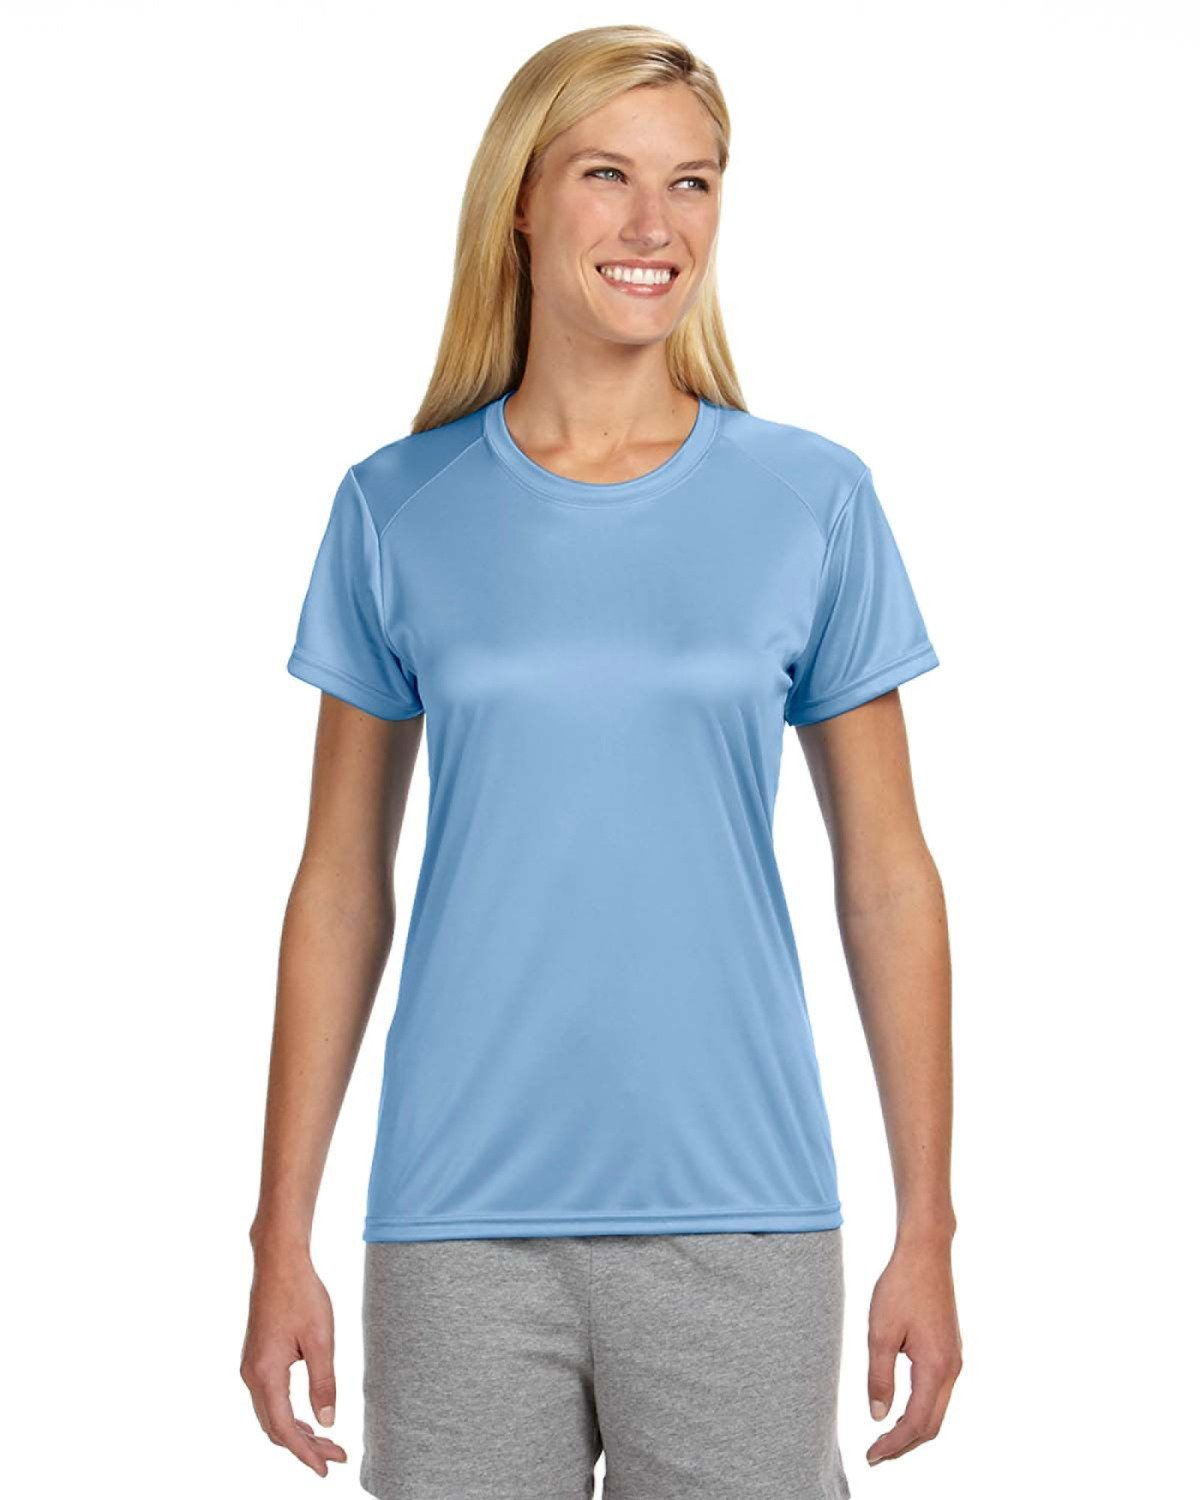 A4 Ladies' Cooling Performance T-Shirt LIGHT BLUE